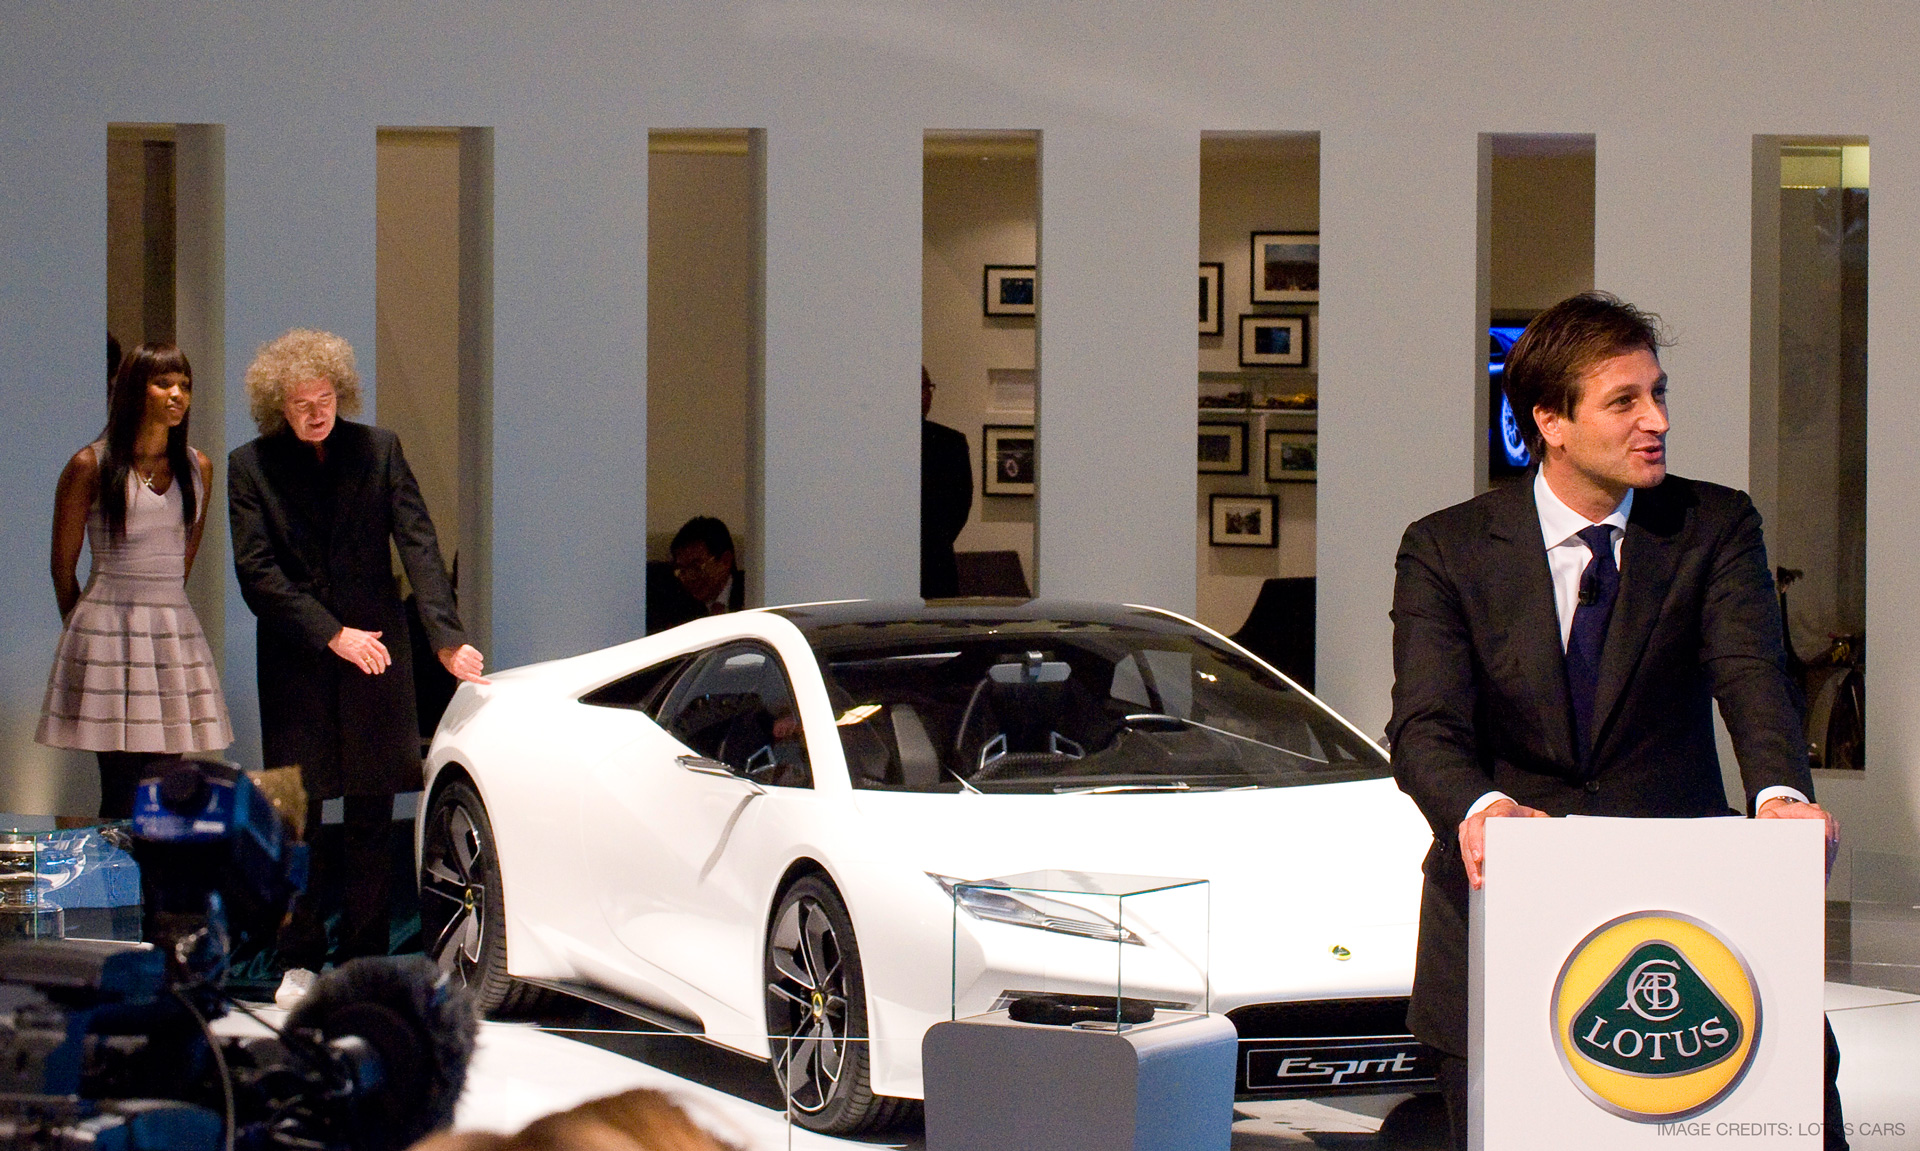 Brian May and Naomi Campbell next to the Lotus Esprit Concept Car at Paris Motor Show 2010